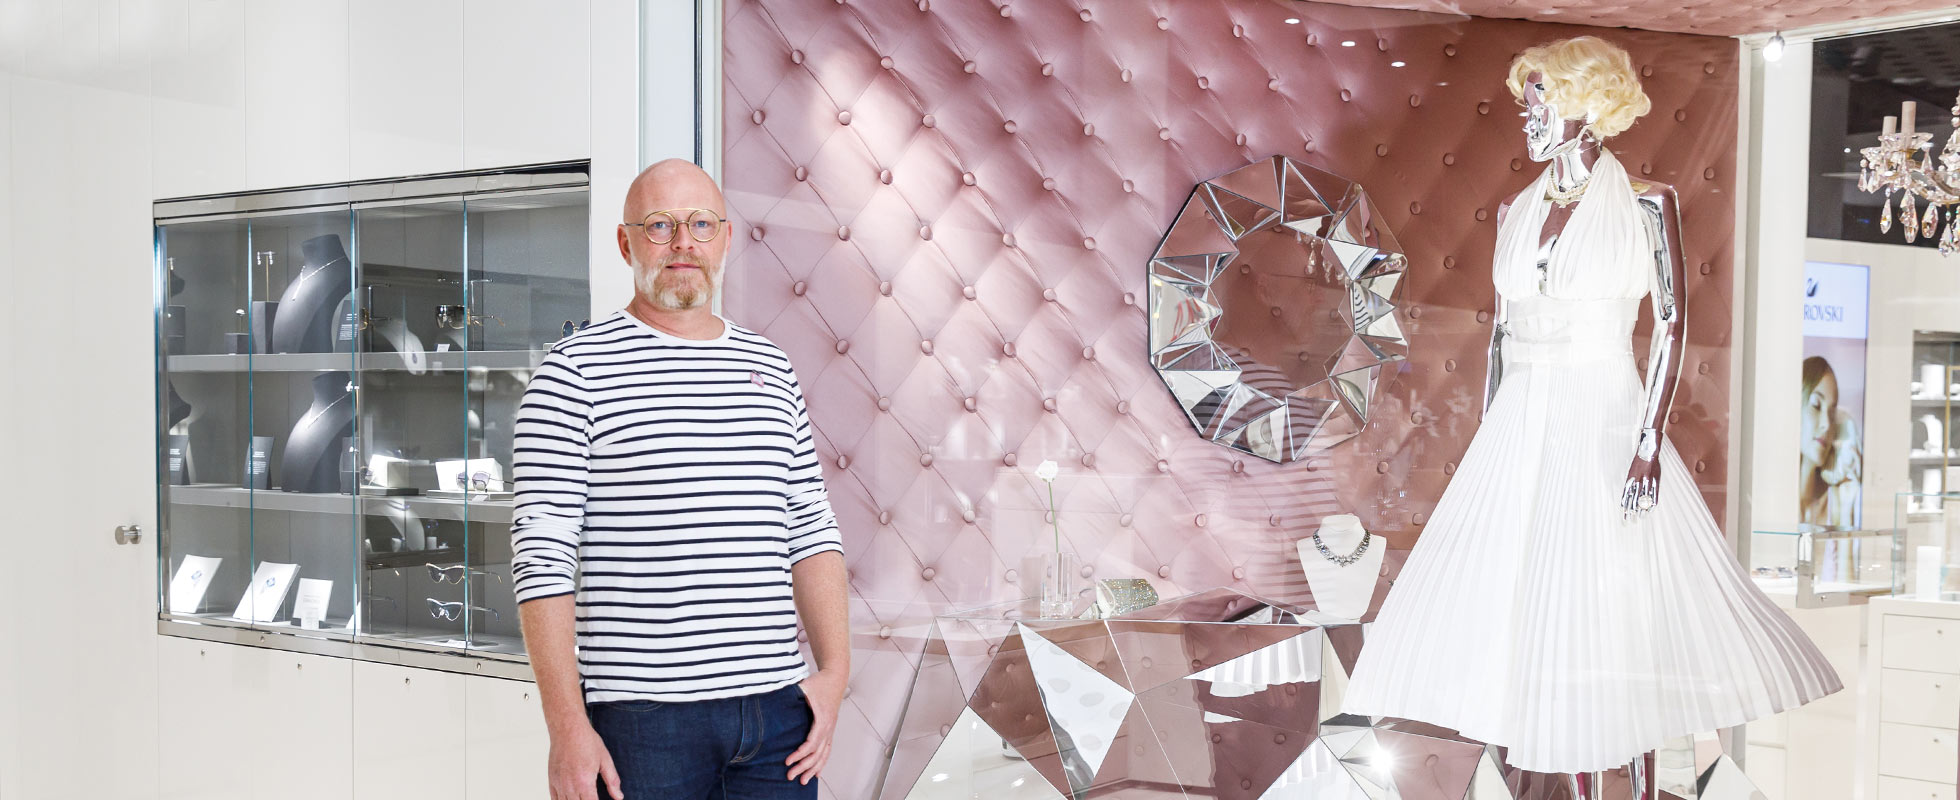 Marcel van Doorn created art spaces for Swarovski Crystal Worlds.